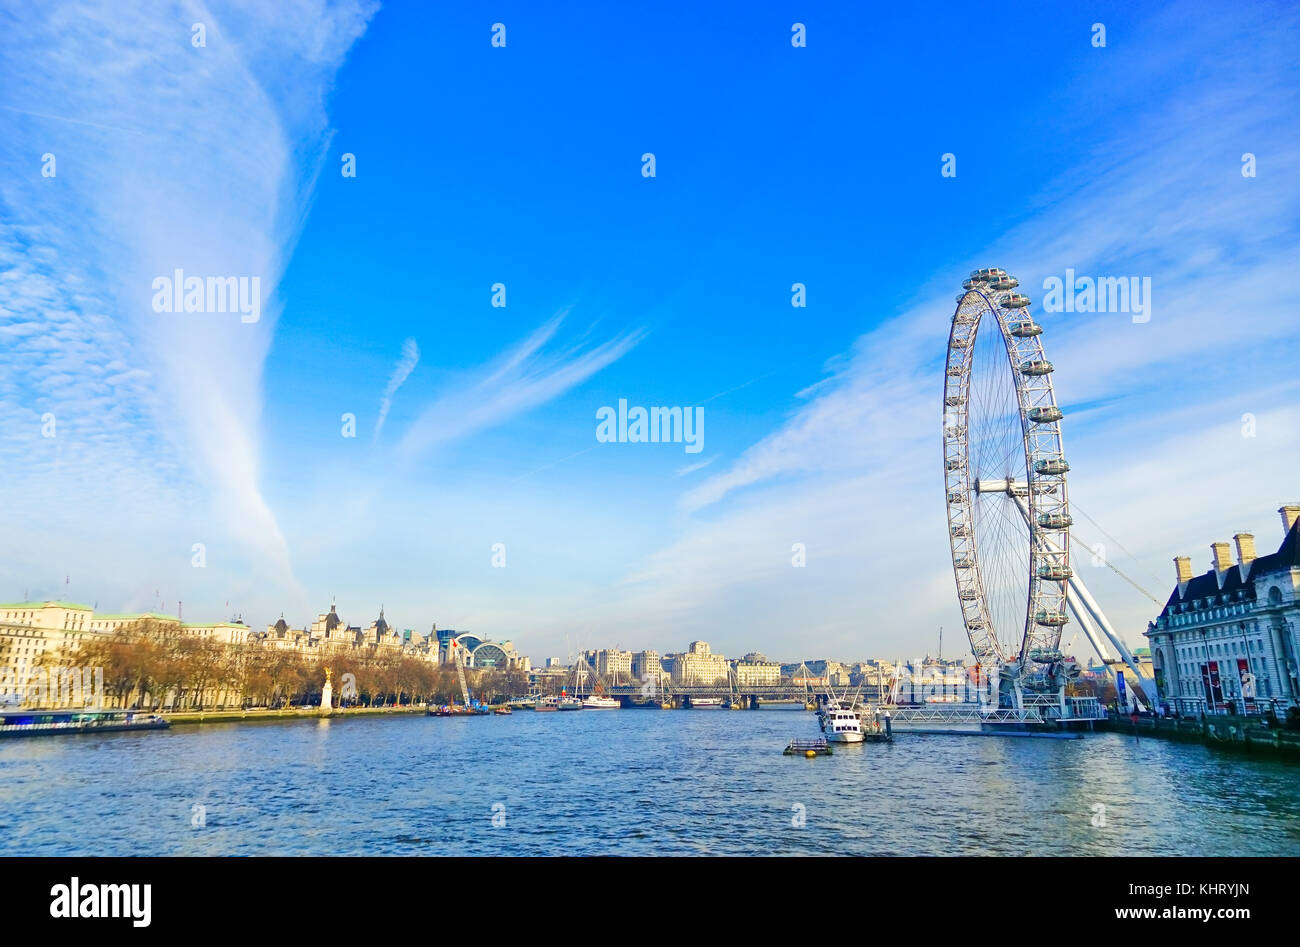 View of the River Thames with London Eye in a sunny day - Stock Image